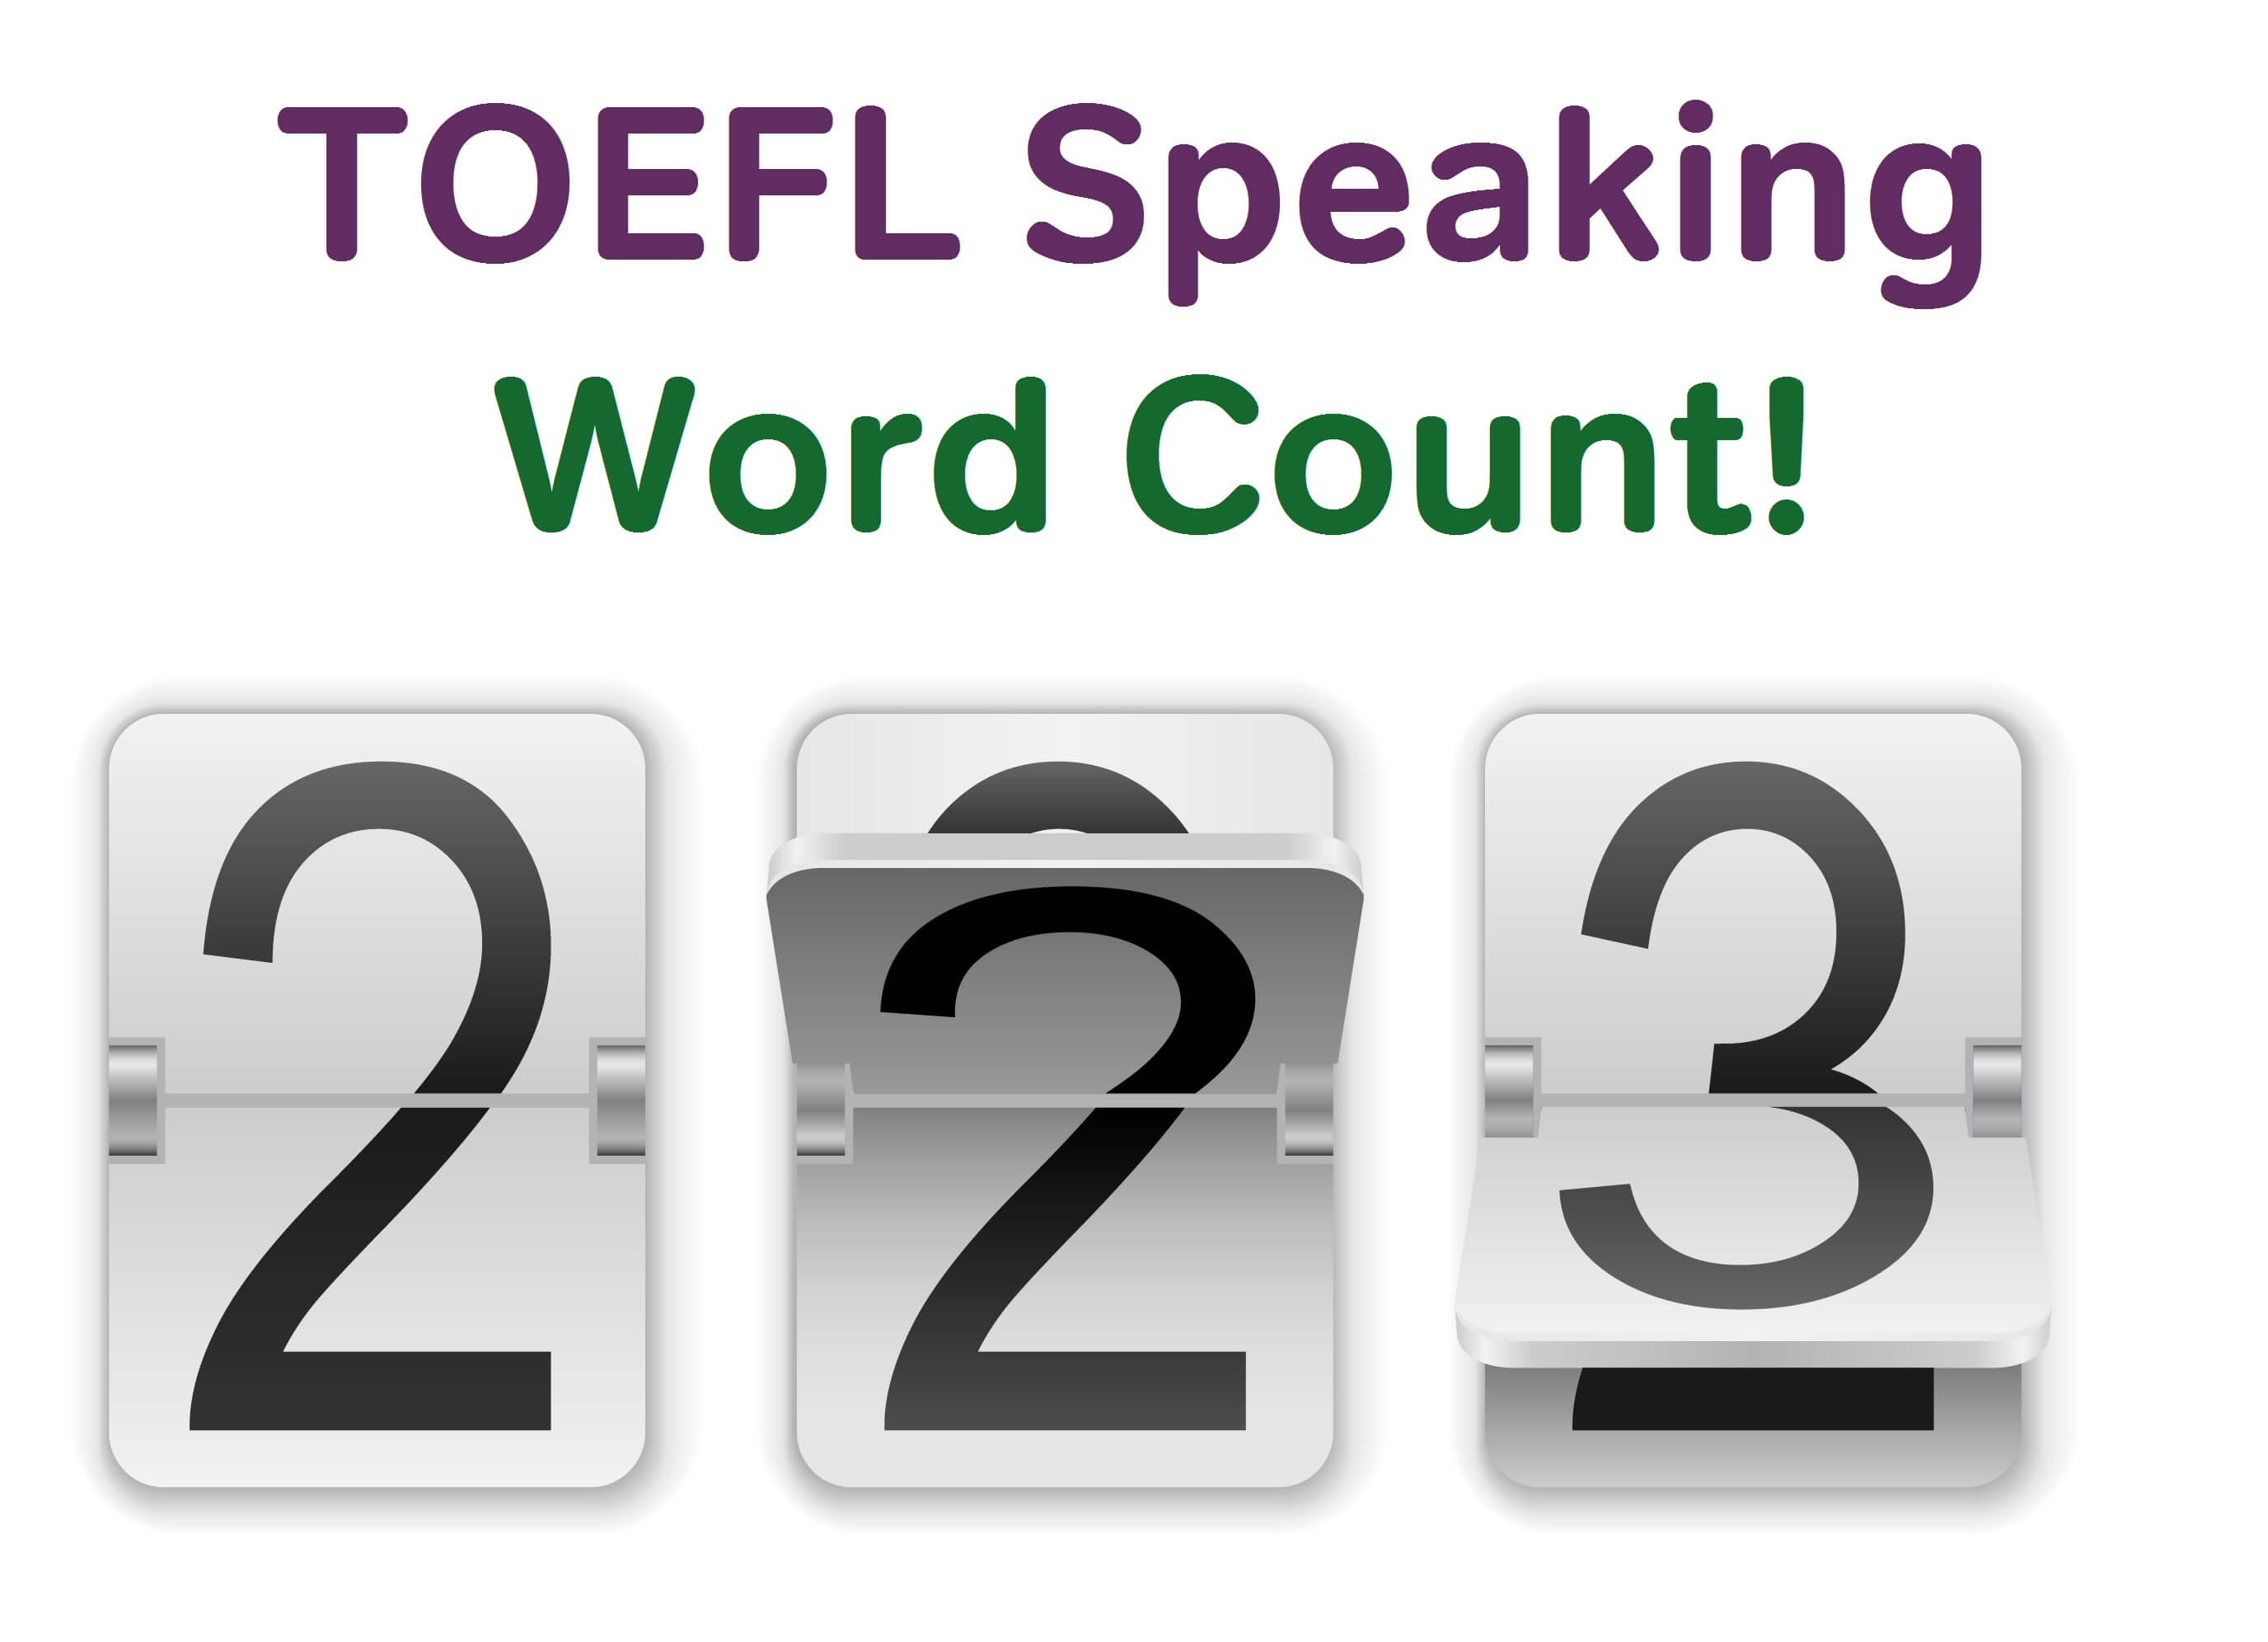 TOEFL Speaking Strategy: Aim for 100 Words - Magoosh TOEFL Blog